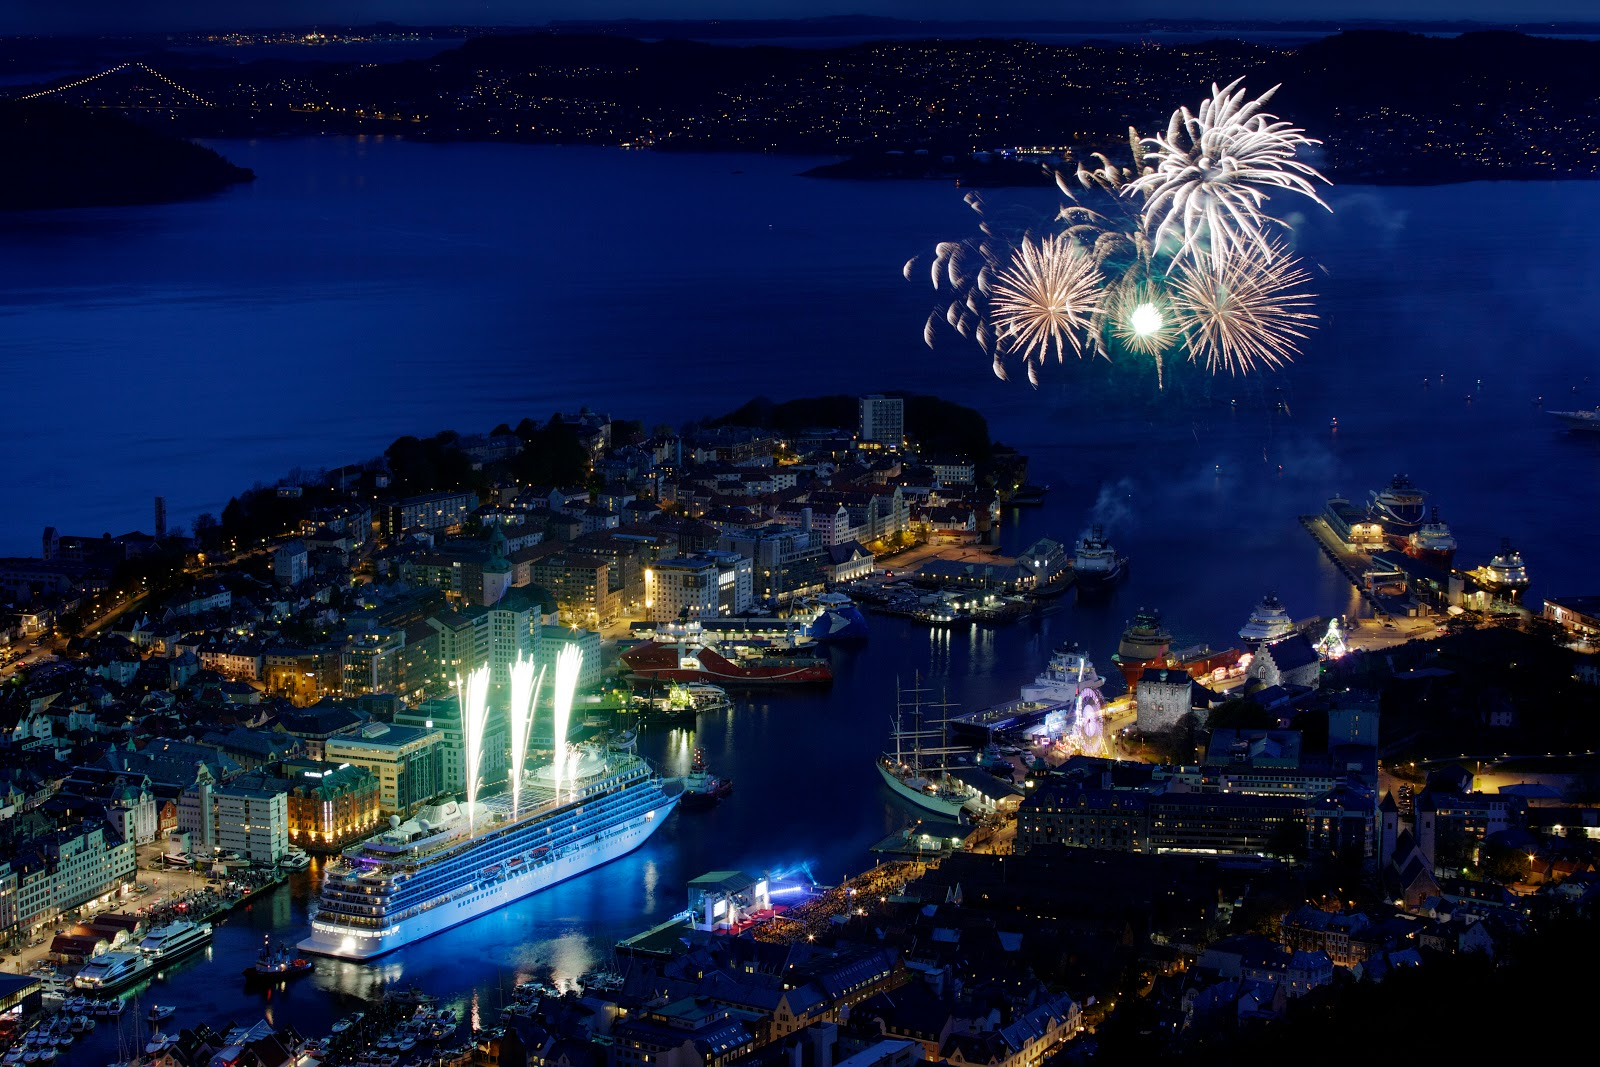 The Viking Star Christening Celebration Event May 17, 2015, in Bergen, Norway. Photo: © Viking Cruises. Unauthorized use is prohibited.